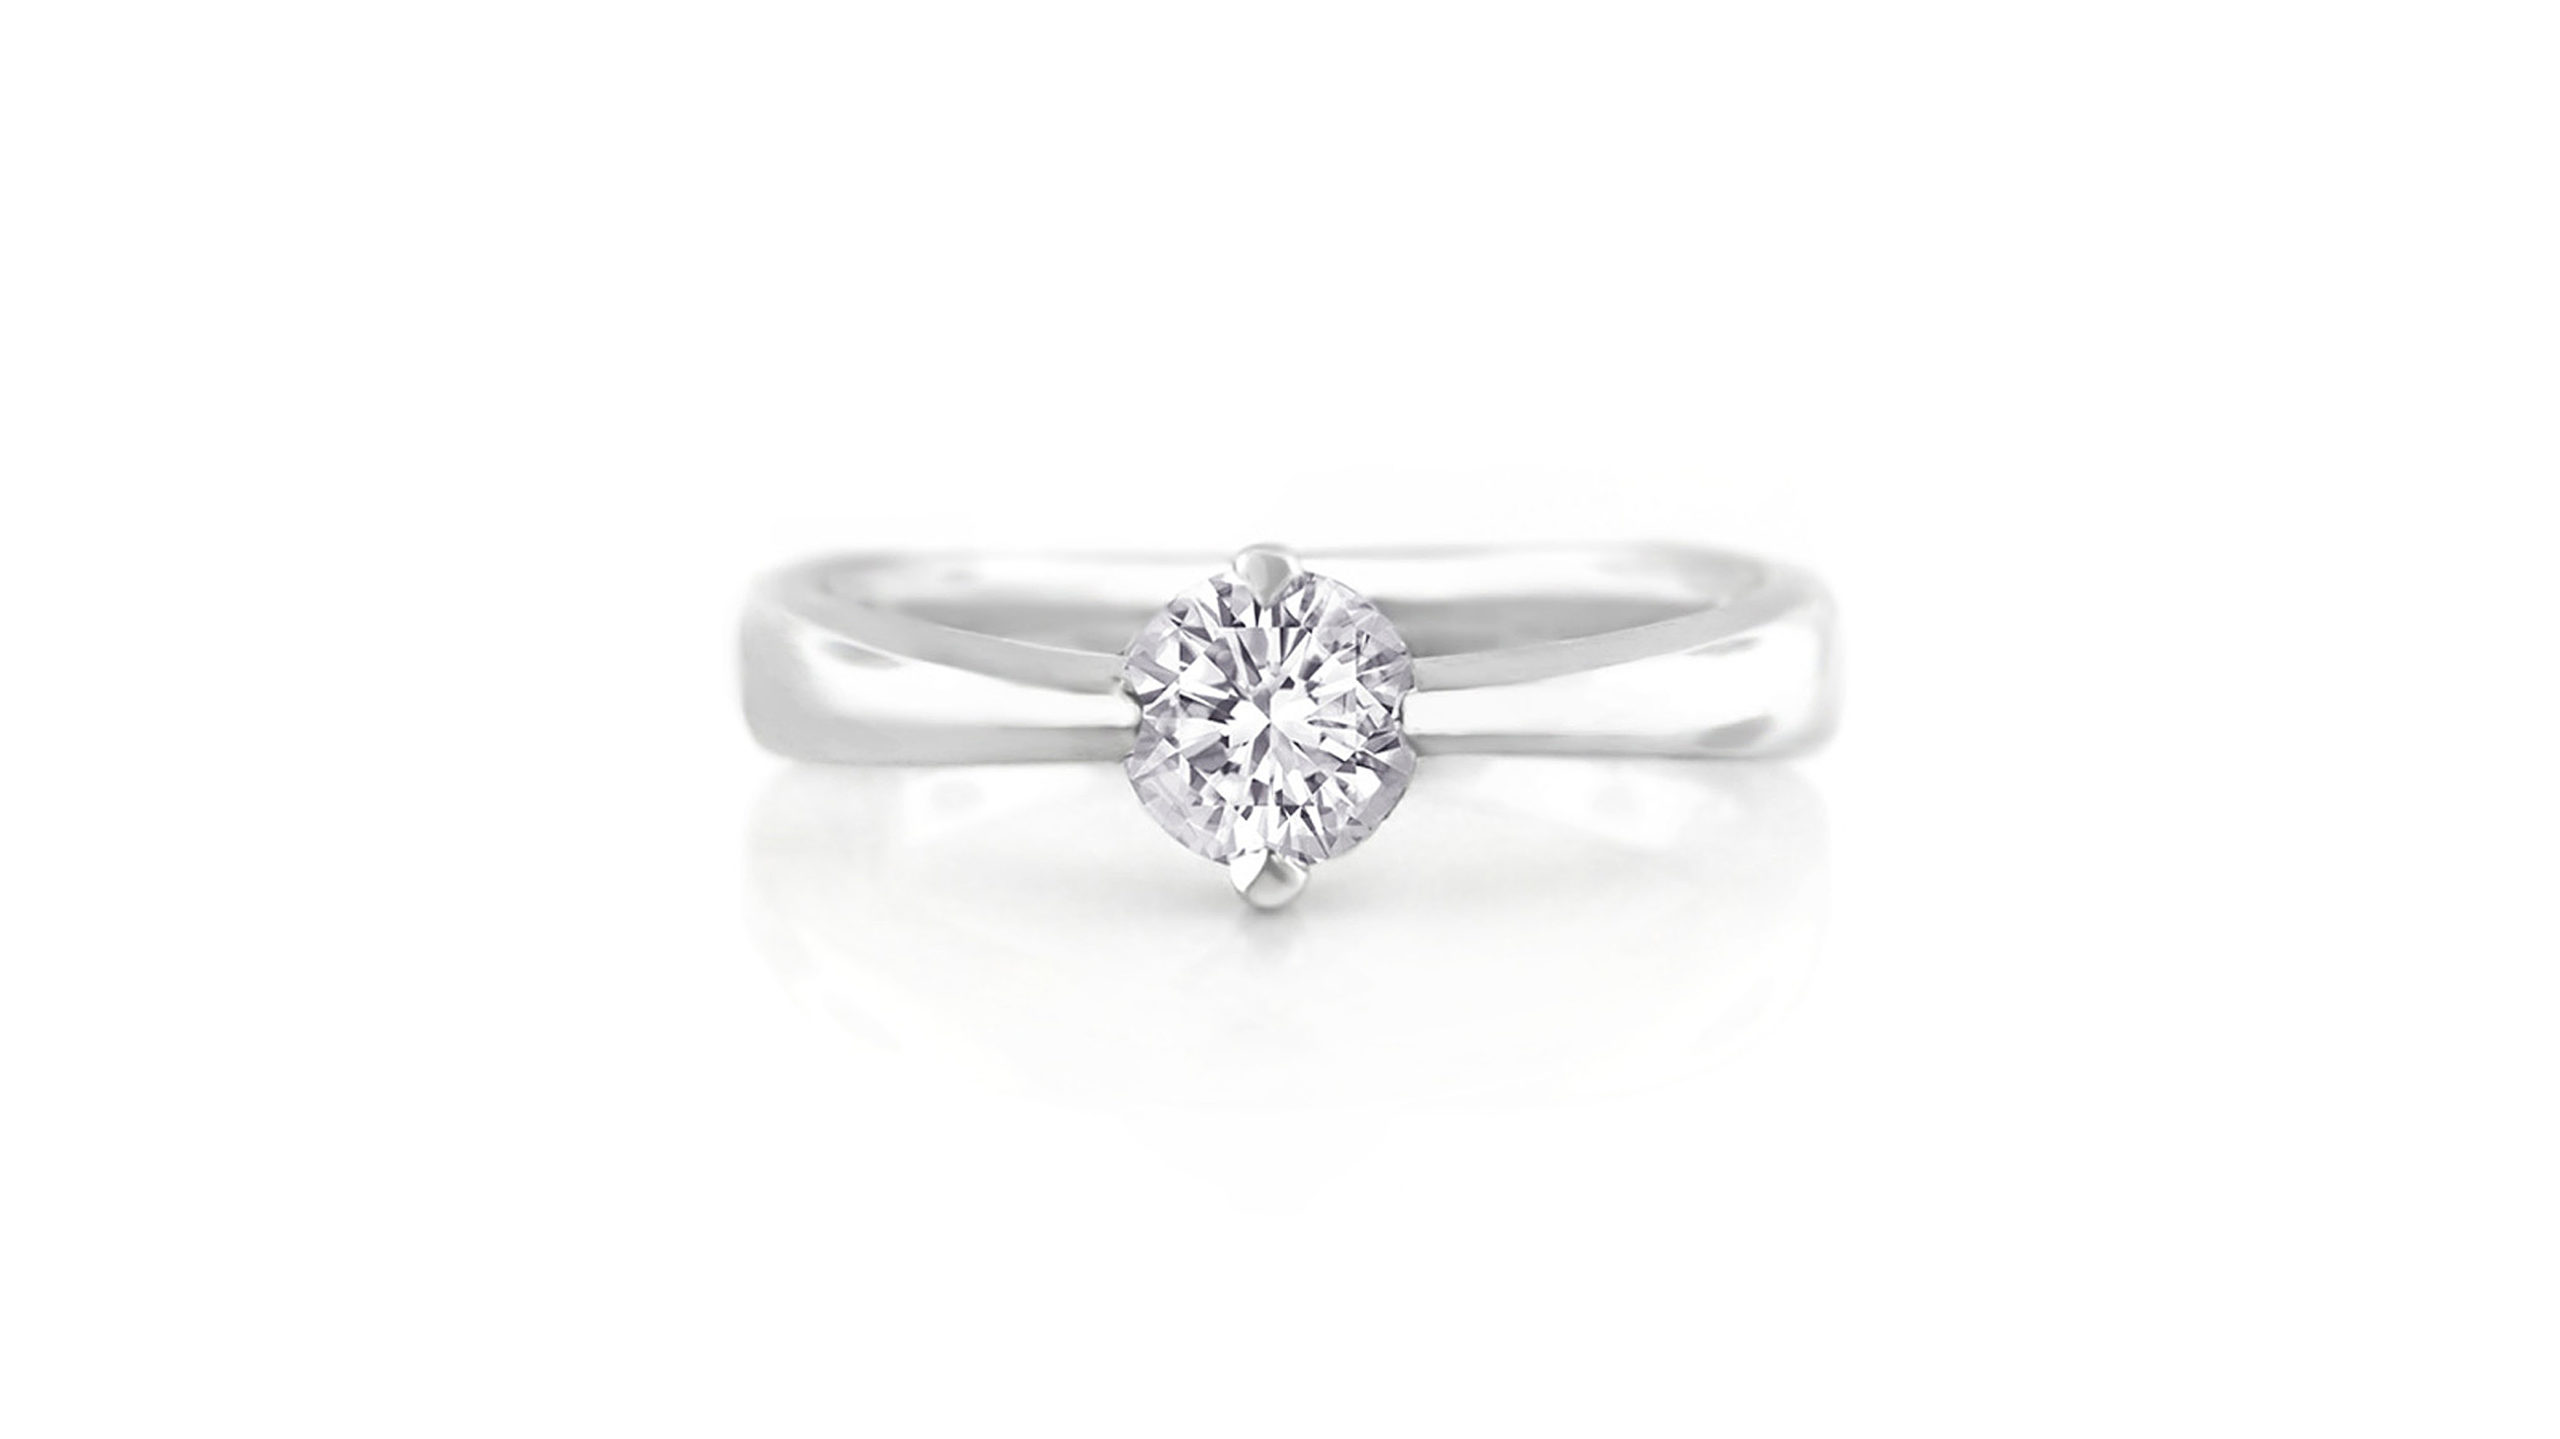 North-South-East-West Diamond Solitaire Ring | An 18 carat white gold diamond engagement ring